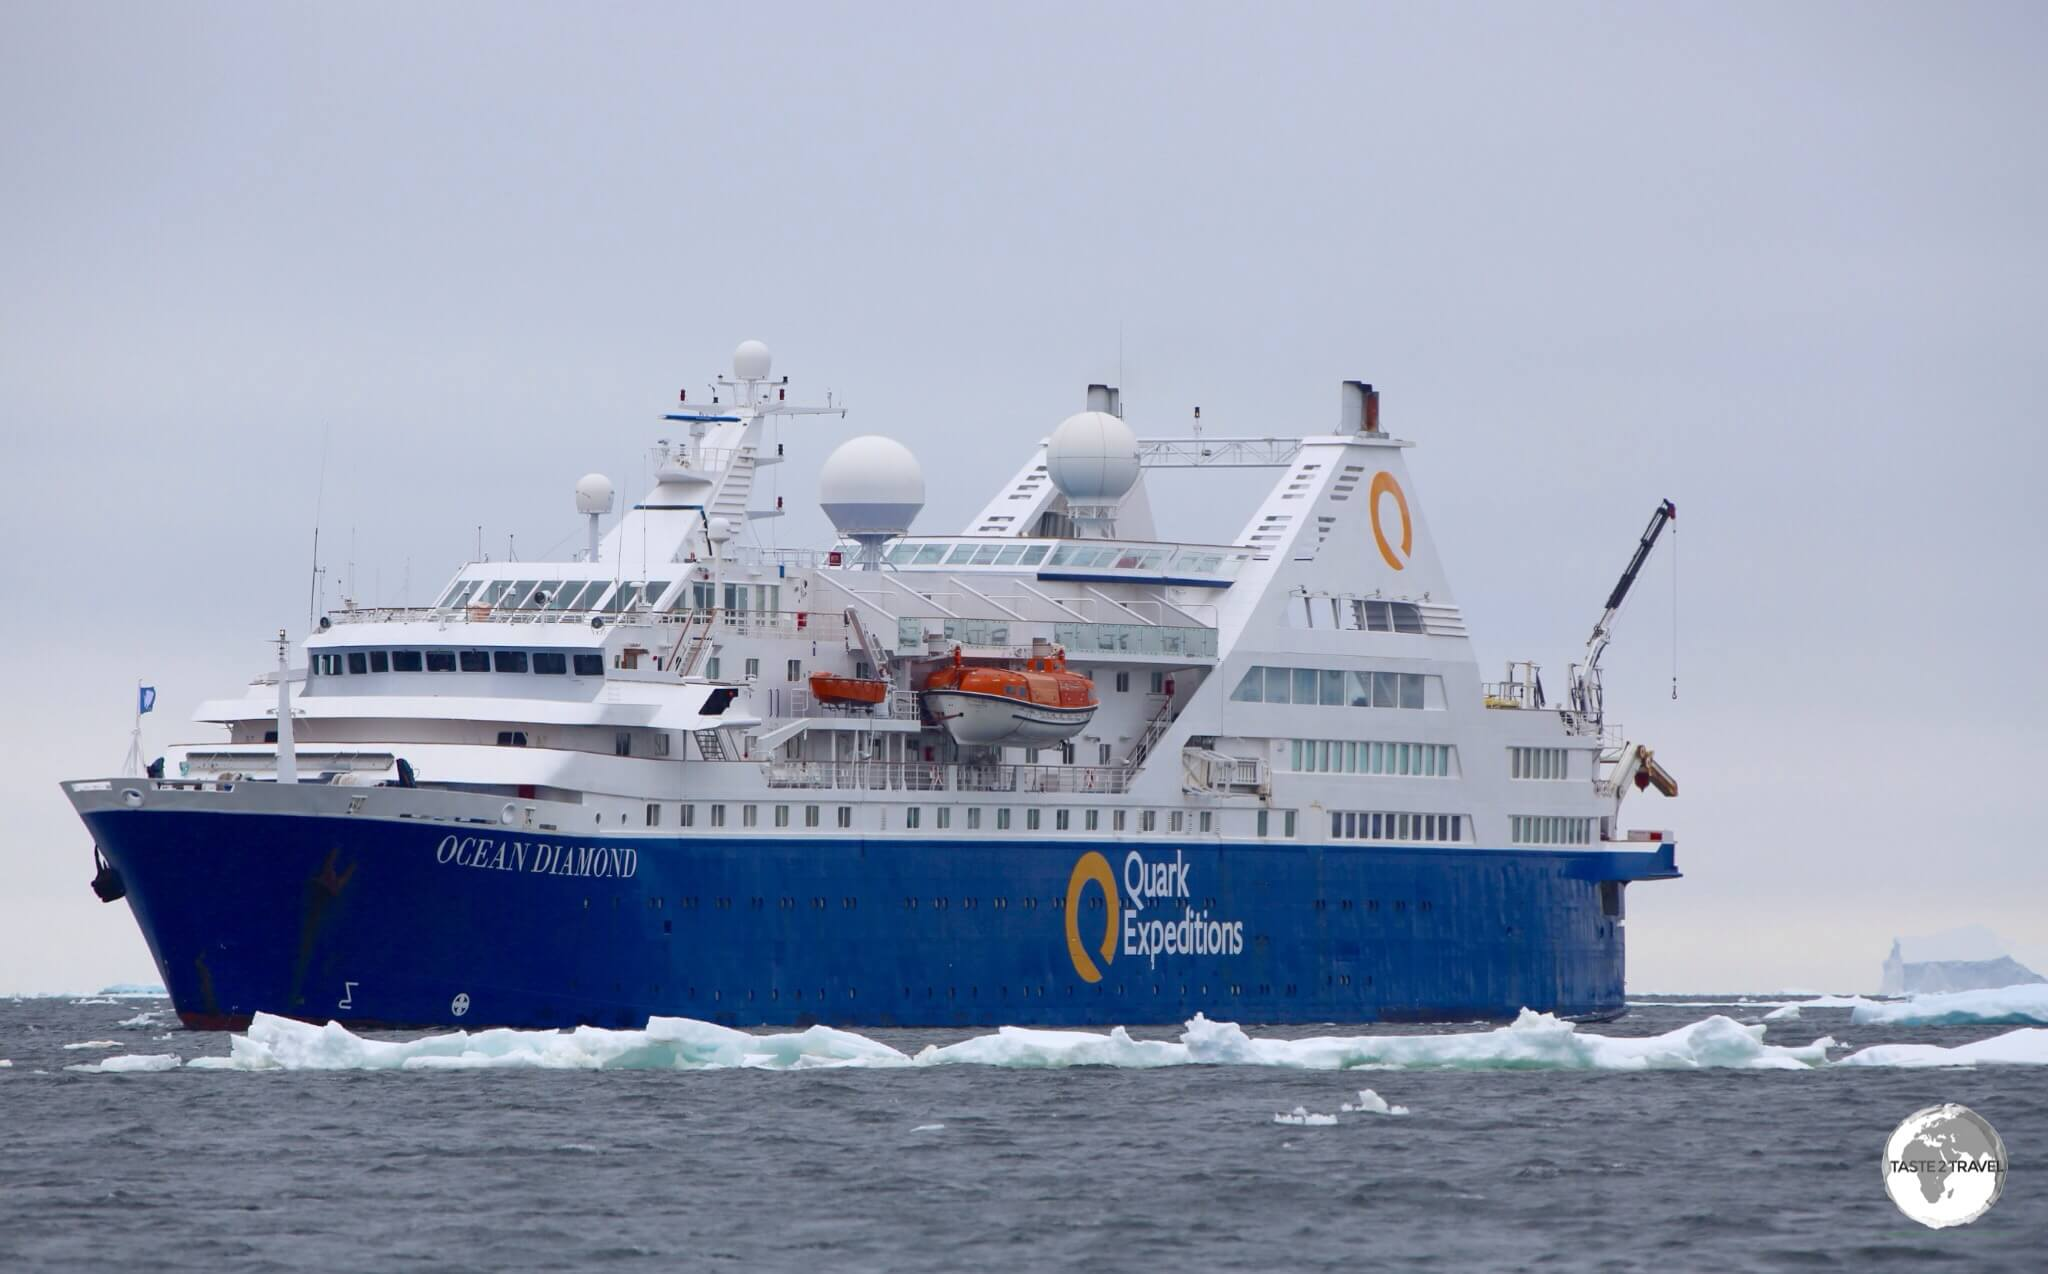 The 'Ocean Diamond' moored close to Adelaide island.